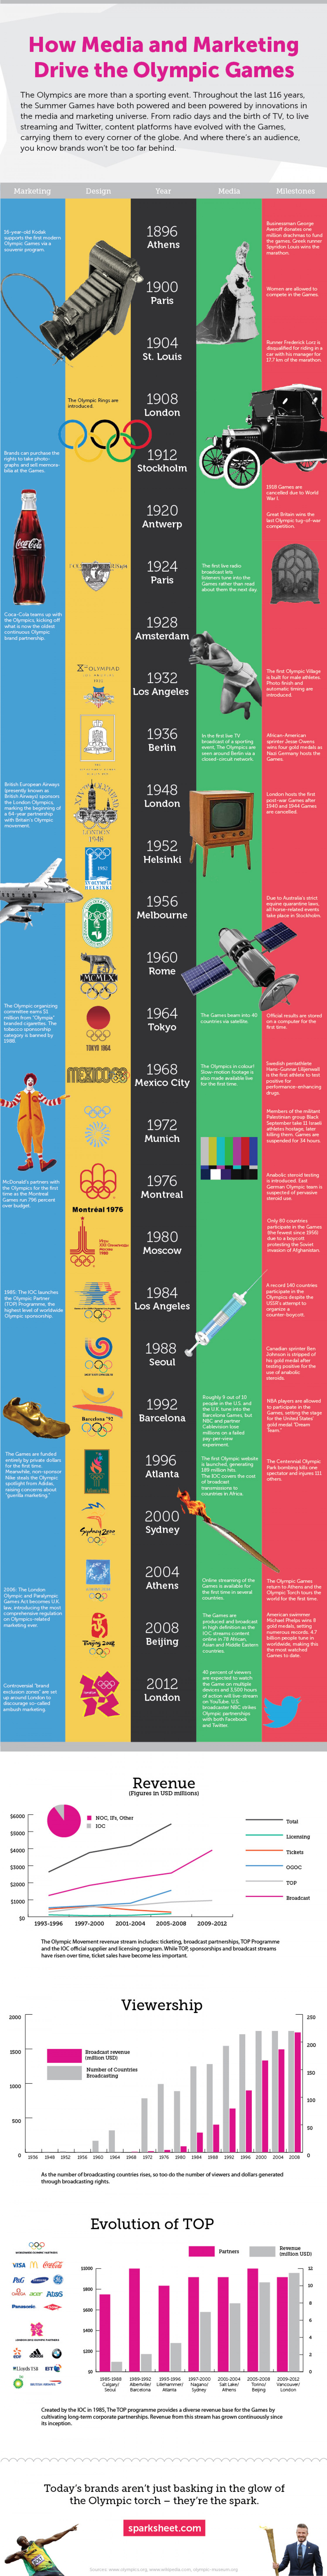 How Media and Marketing Drive the Olympic Games Infographic